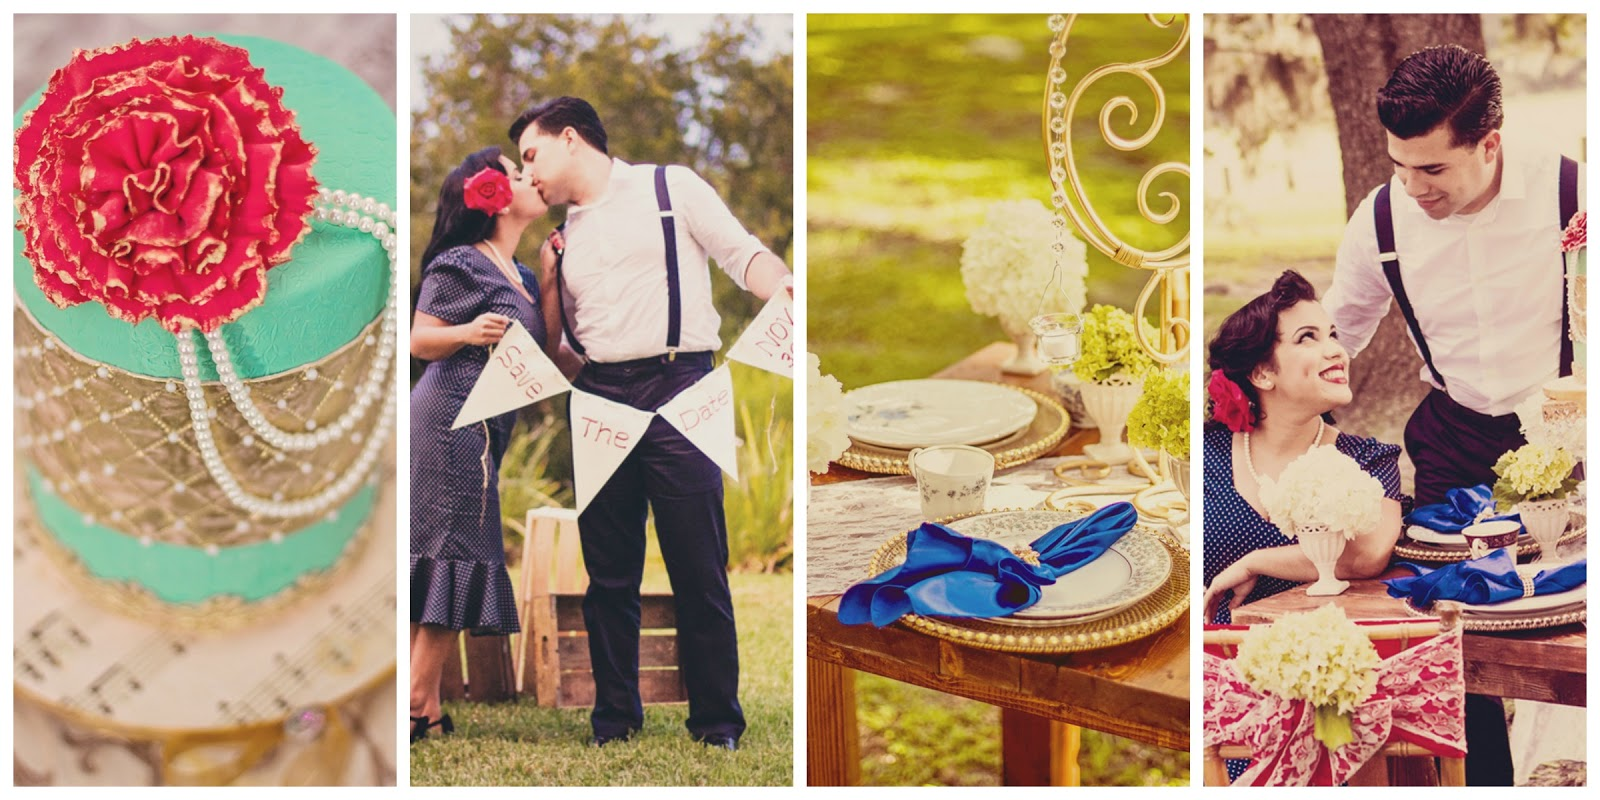 vintage inspired engagement shoot, 1940's wedding inspiration, styled engagement shoot